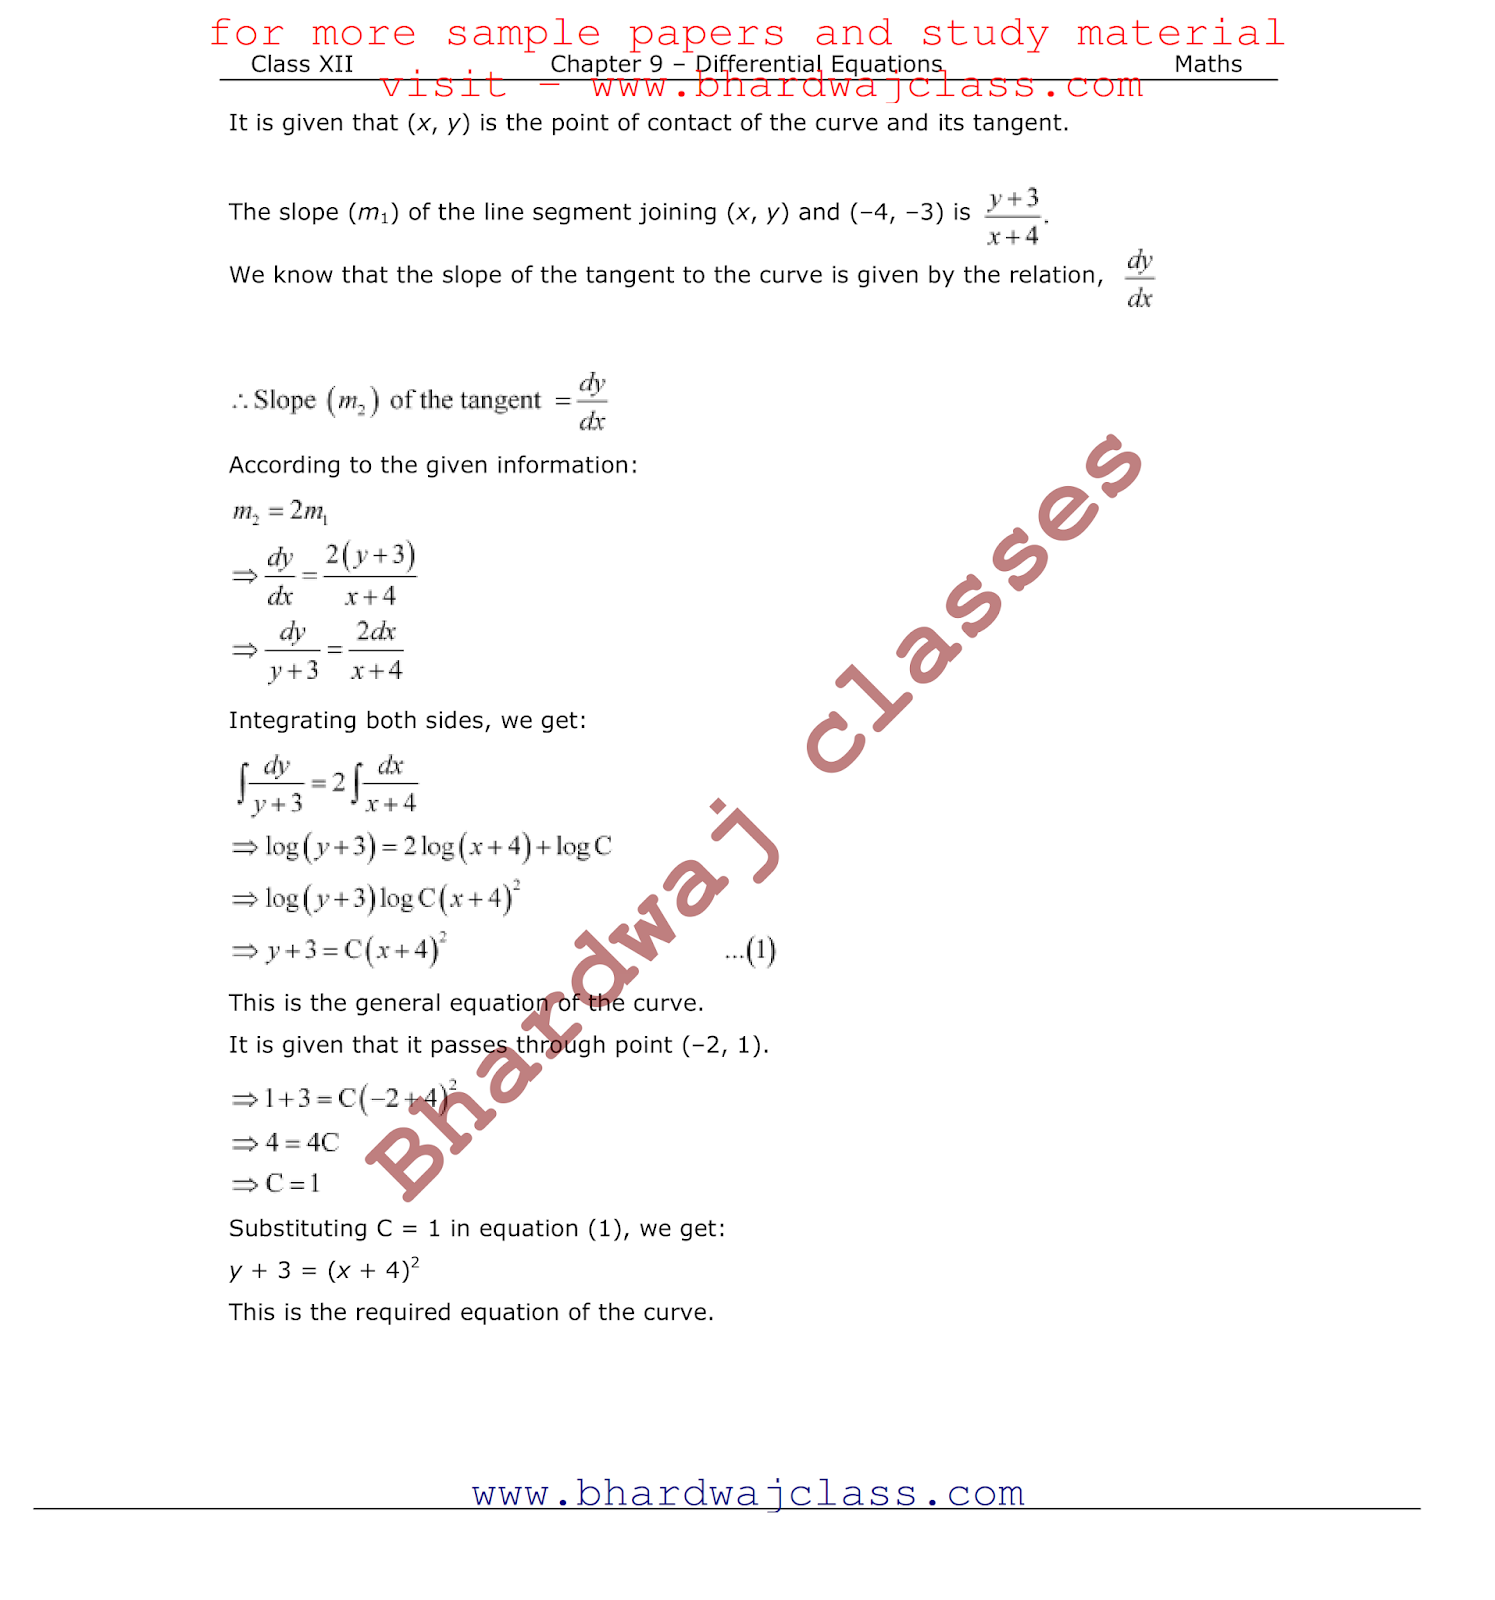 NCERT Solutions for Class 12 Mathematics in PDF Free Download